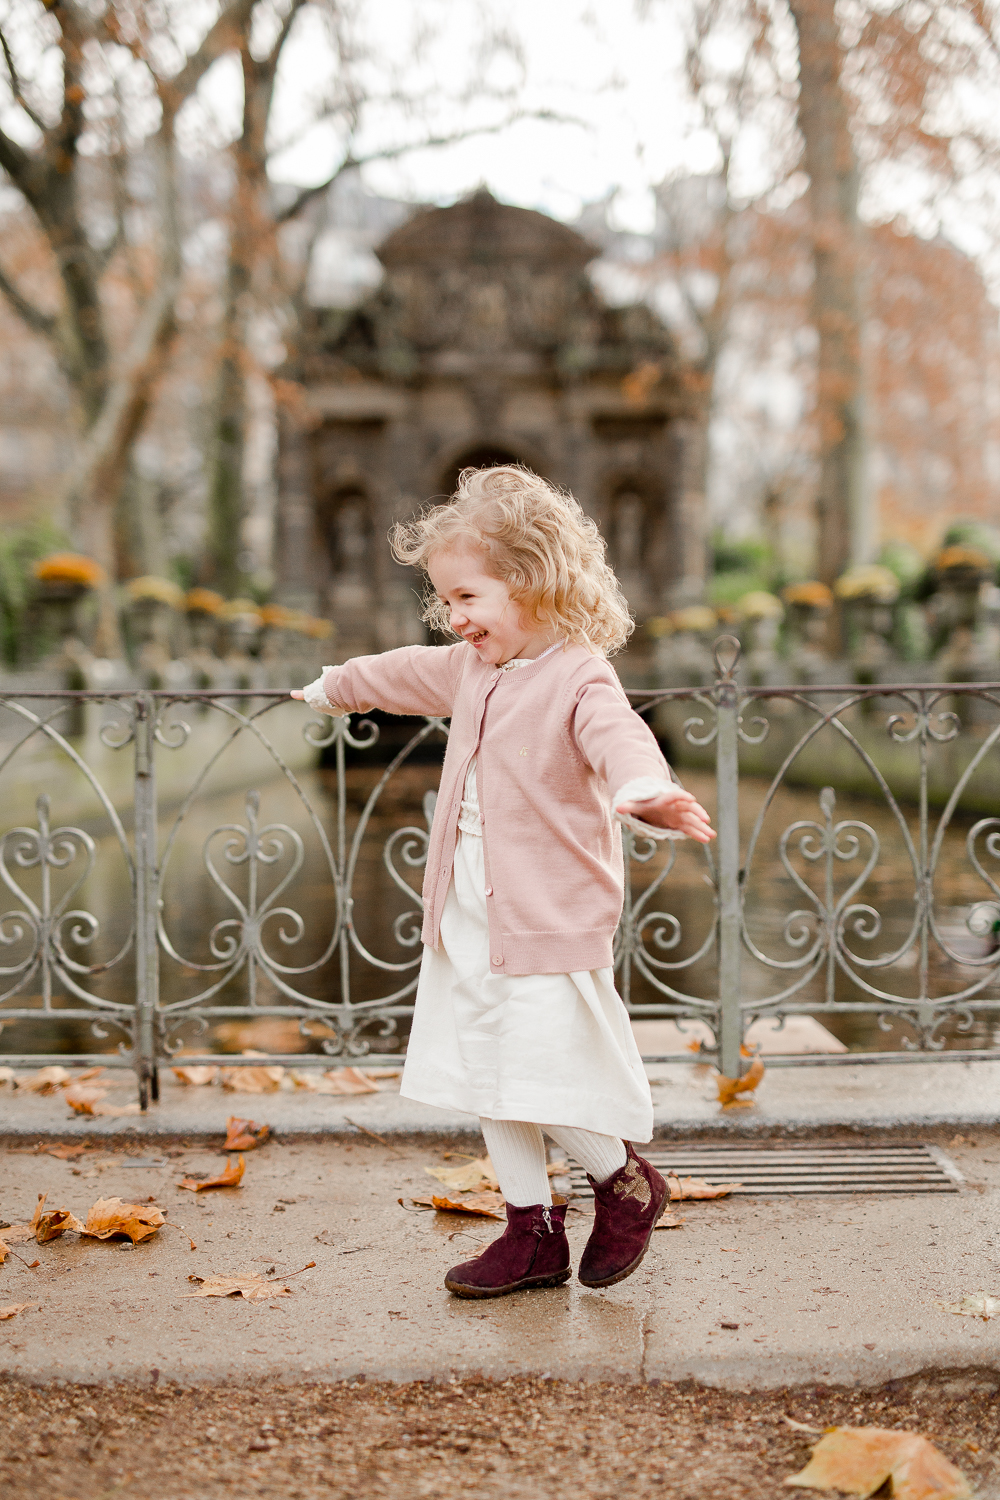 best-paris-family-photographer-fall-mother-daughter-3-year-old-portraits_003.jpg